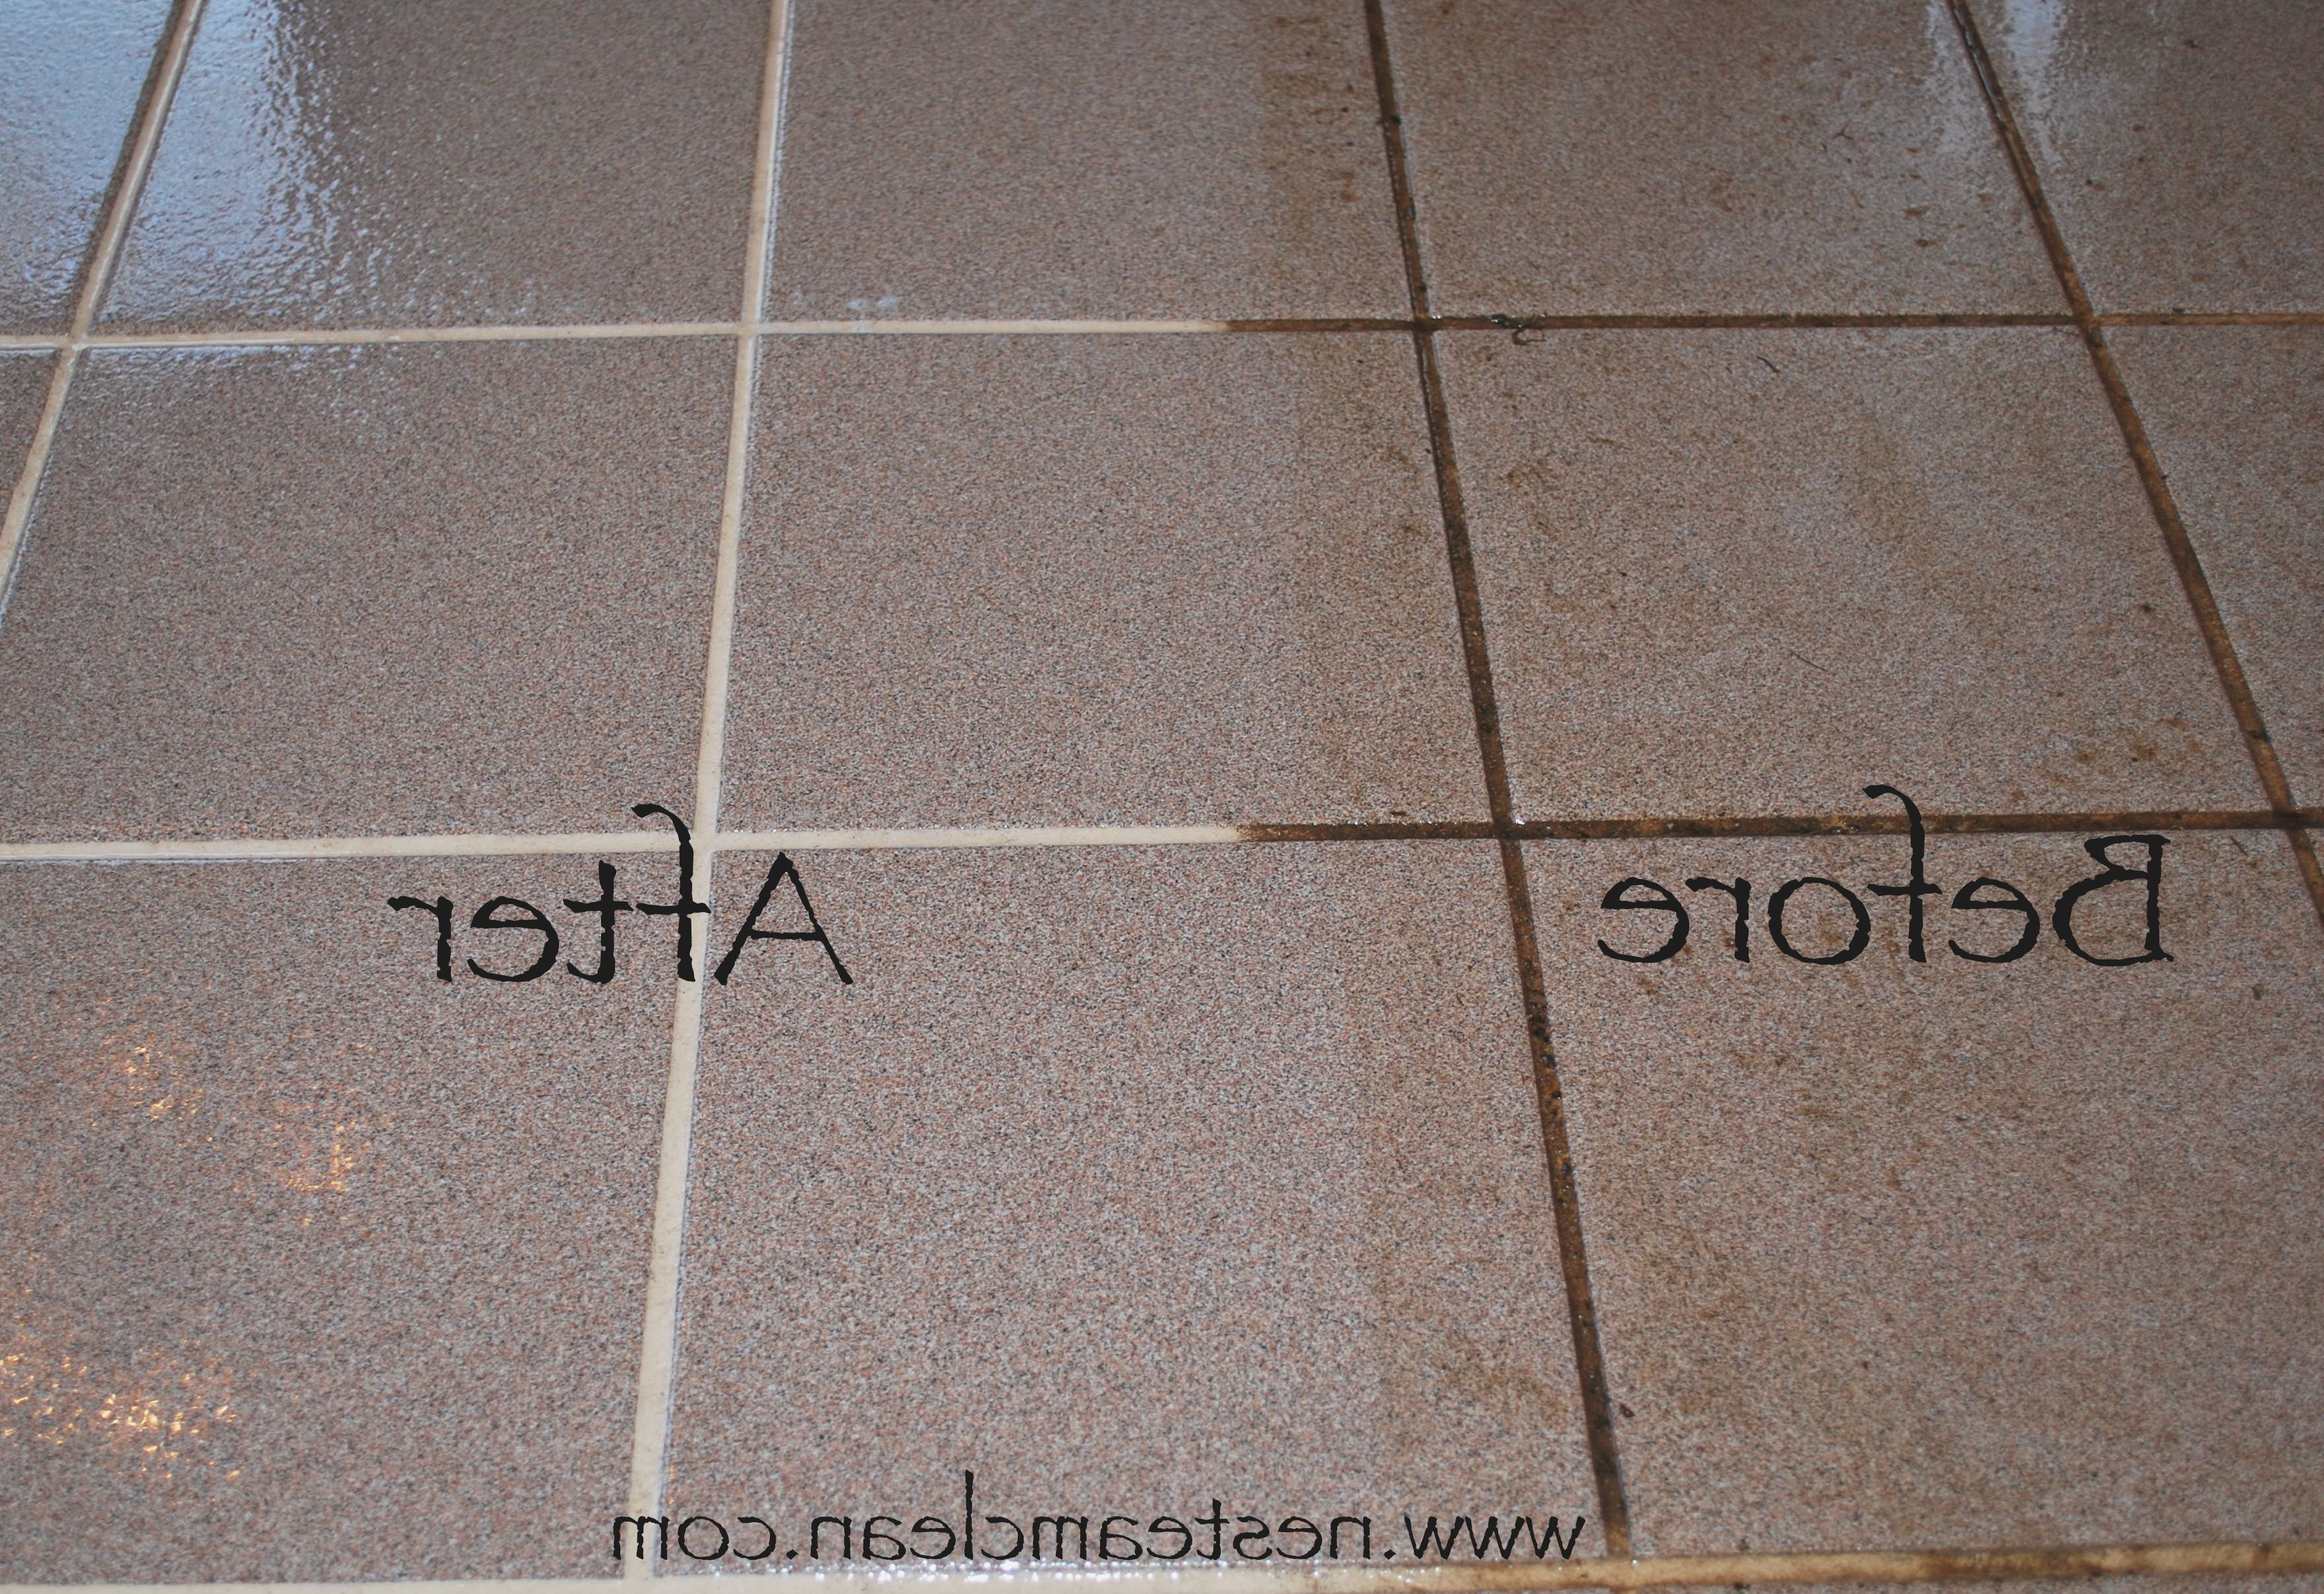 Fashionable design how to clean bathroom floor tile grout ceramic